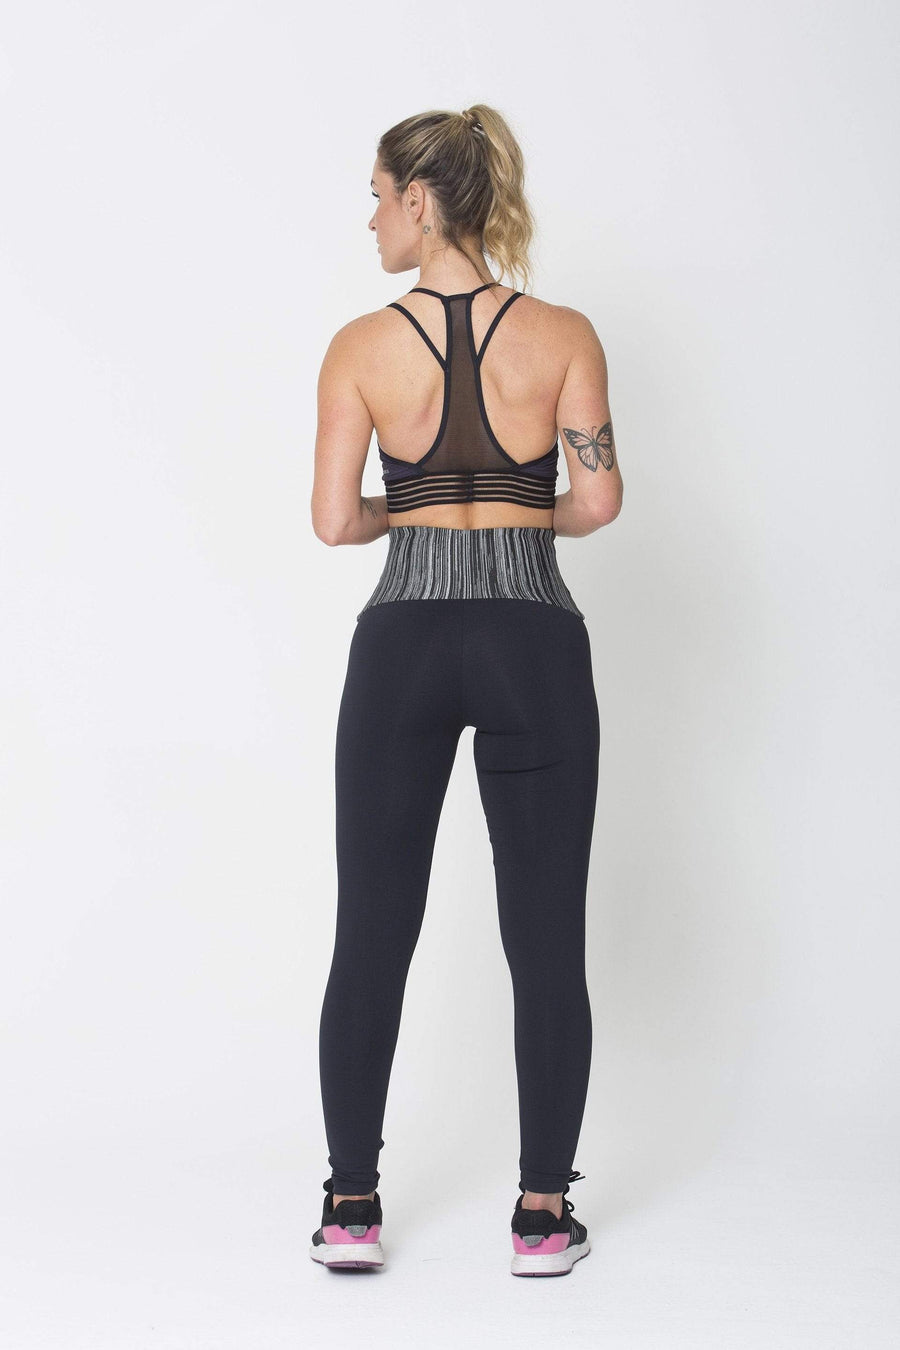 Grey Waist Legging - Sam's Fitness Goods